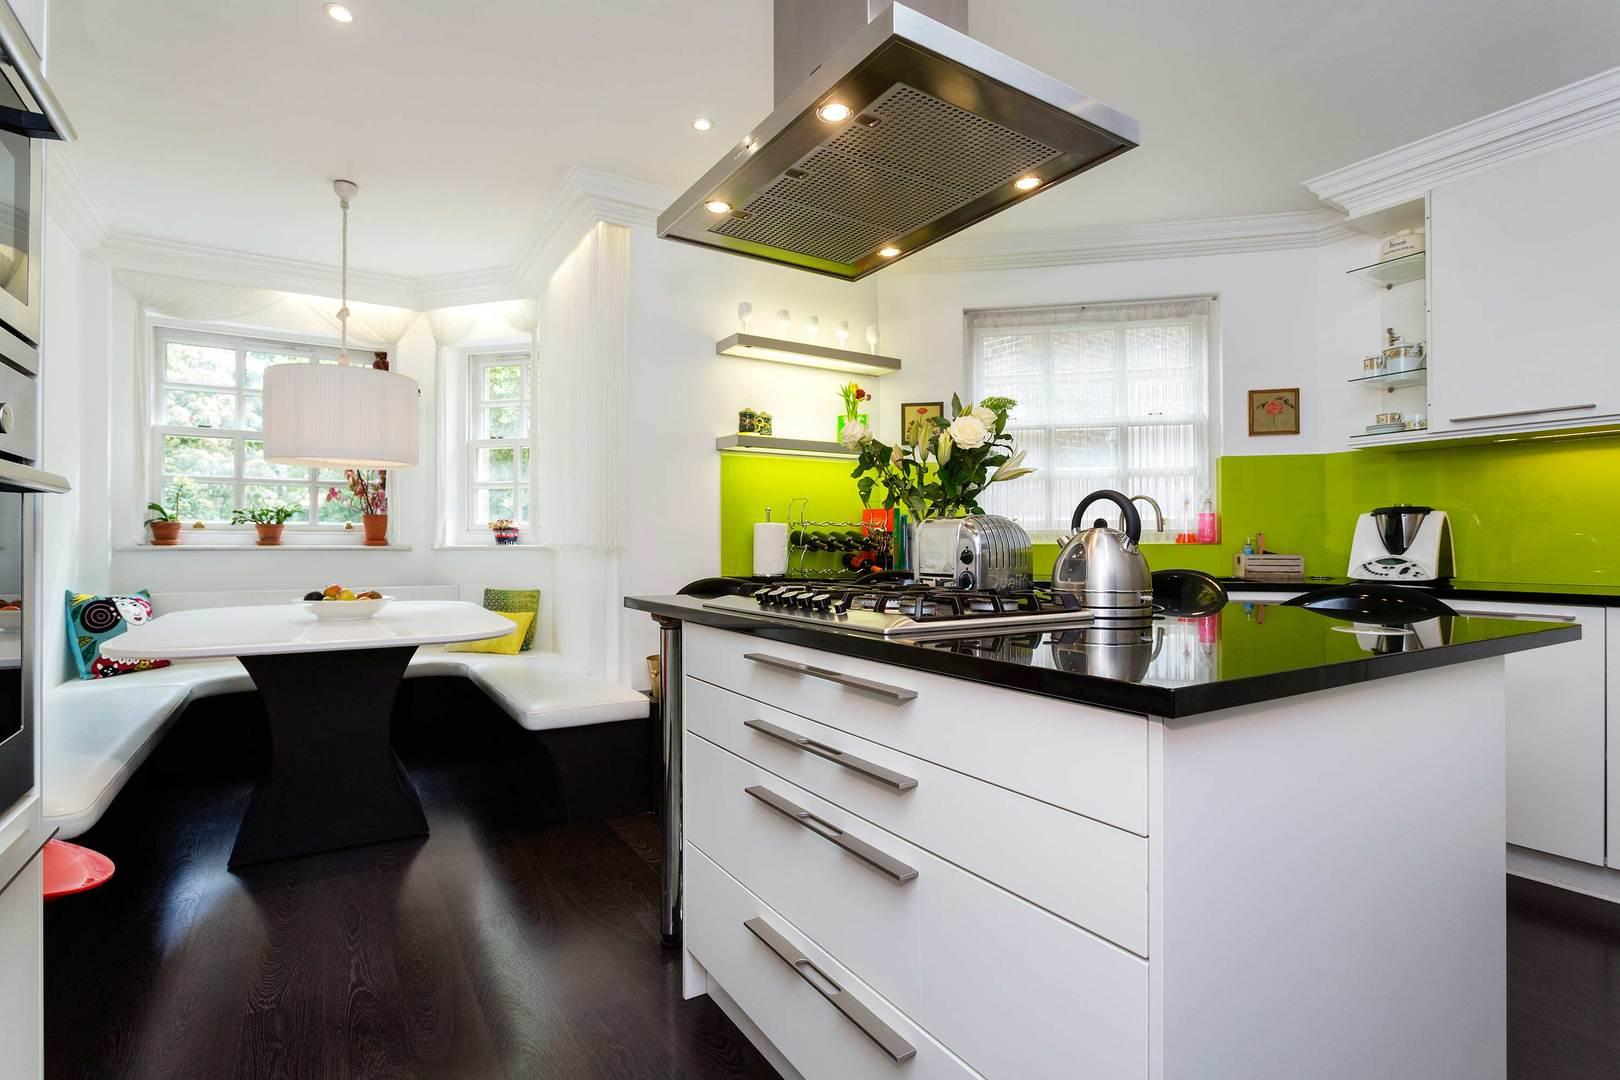 Property Image 2 - Contemporary Chic Hampstead House in Quiet Leafy Area